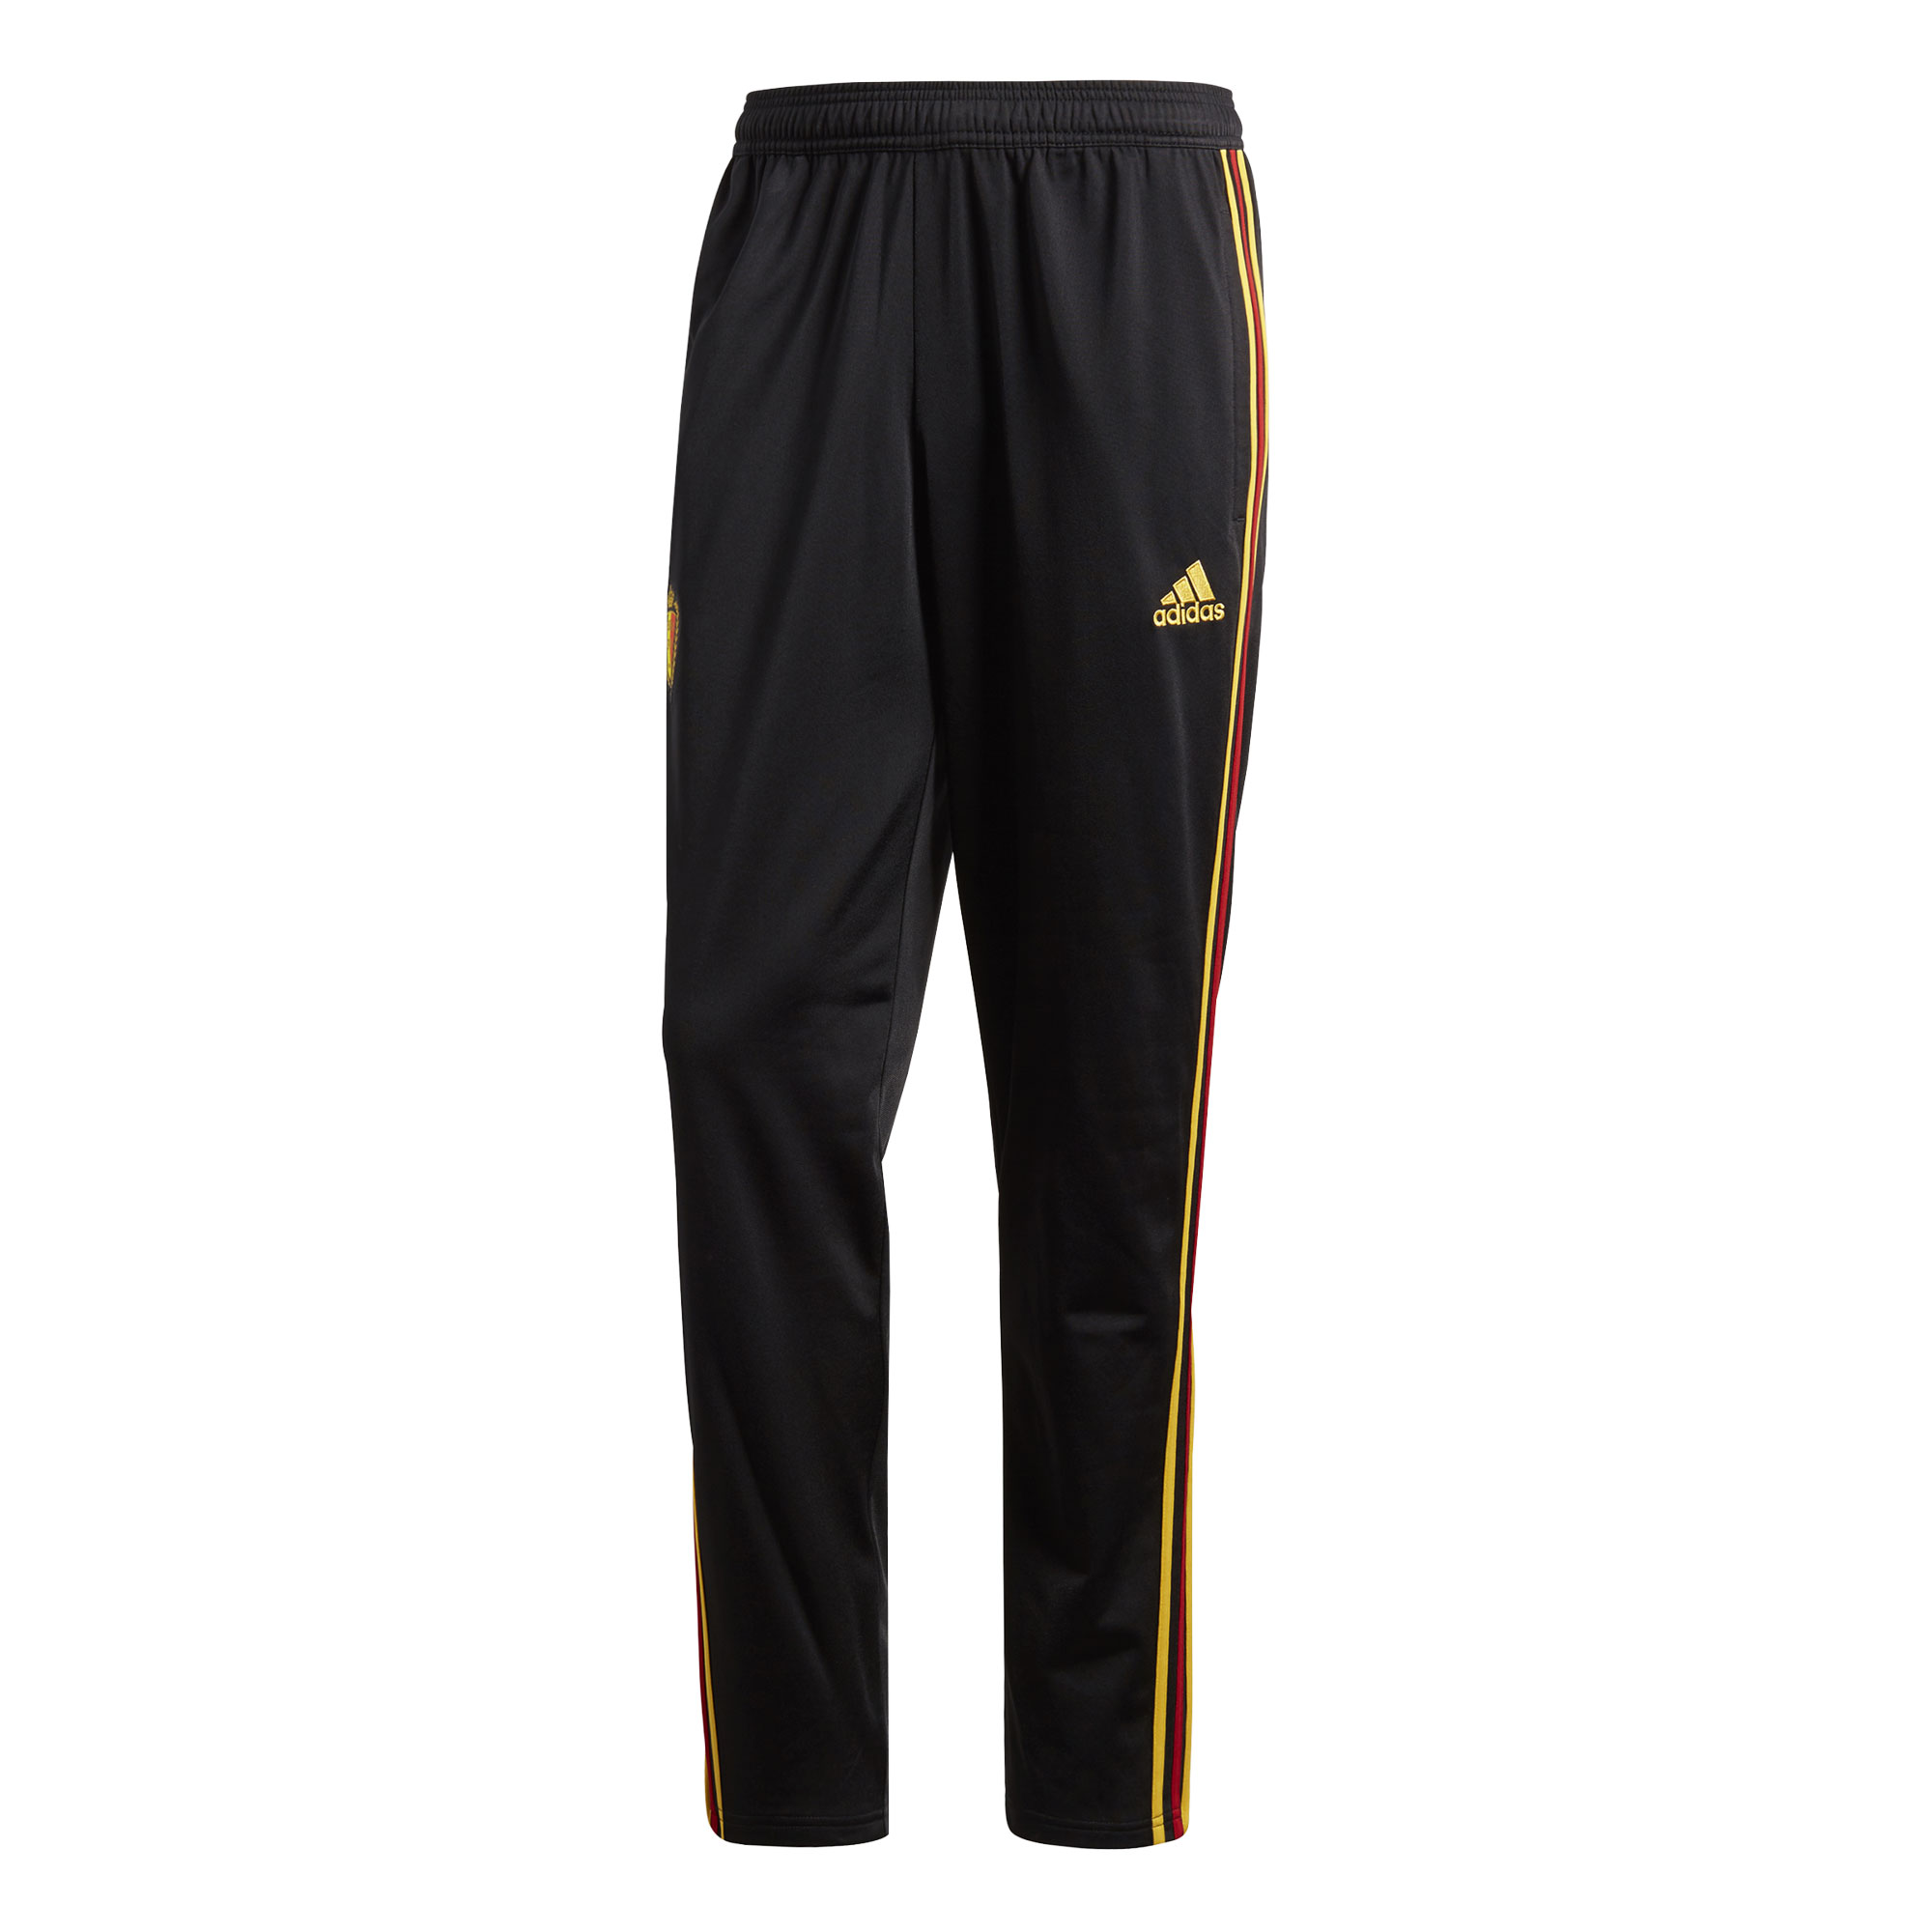 Belgium Polyester Training Pants 2018 / 2019 - Black/Gold - 62